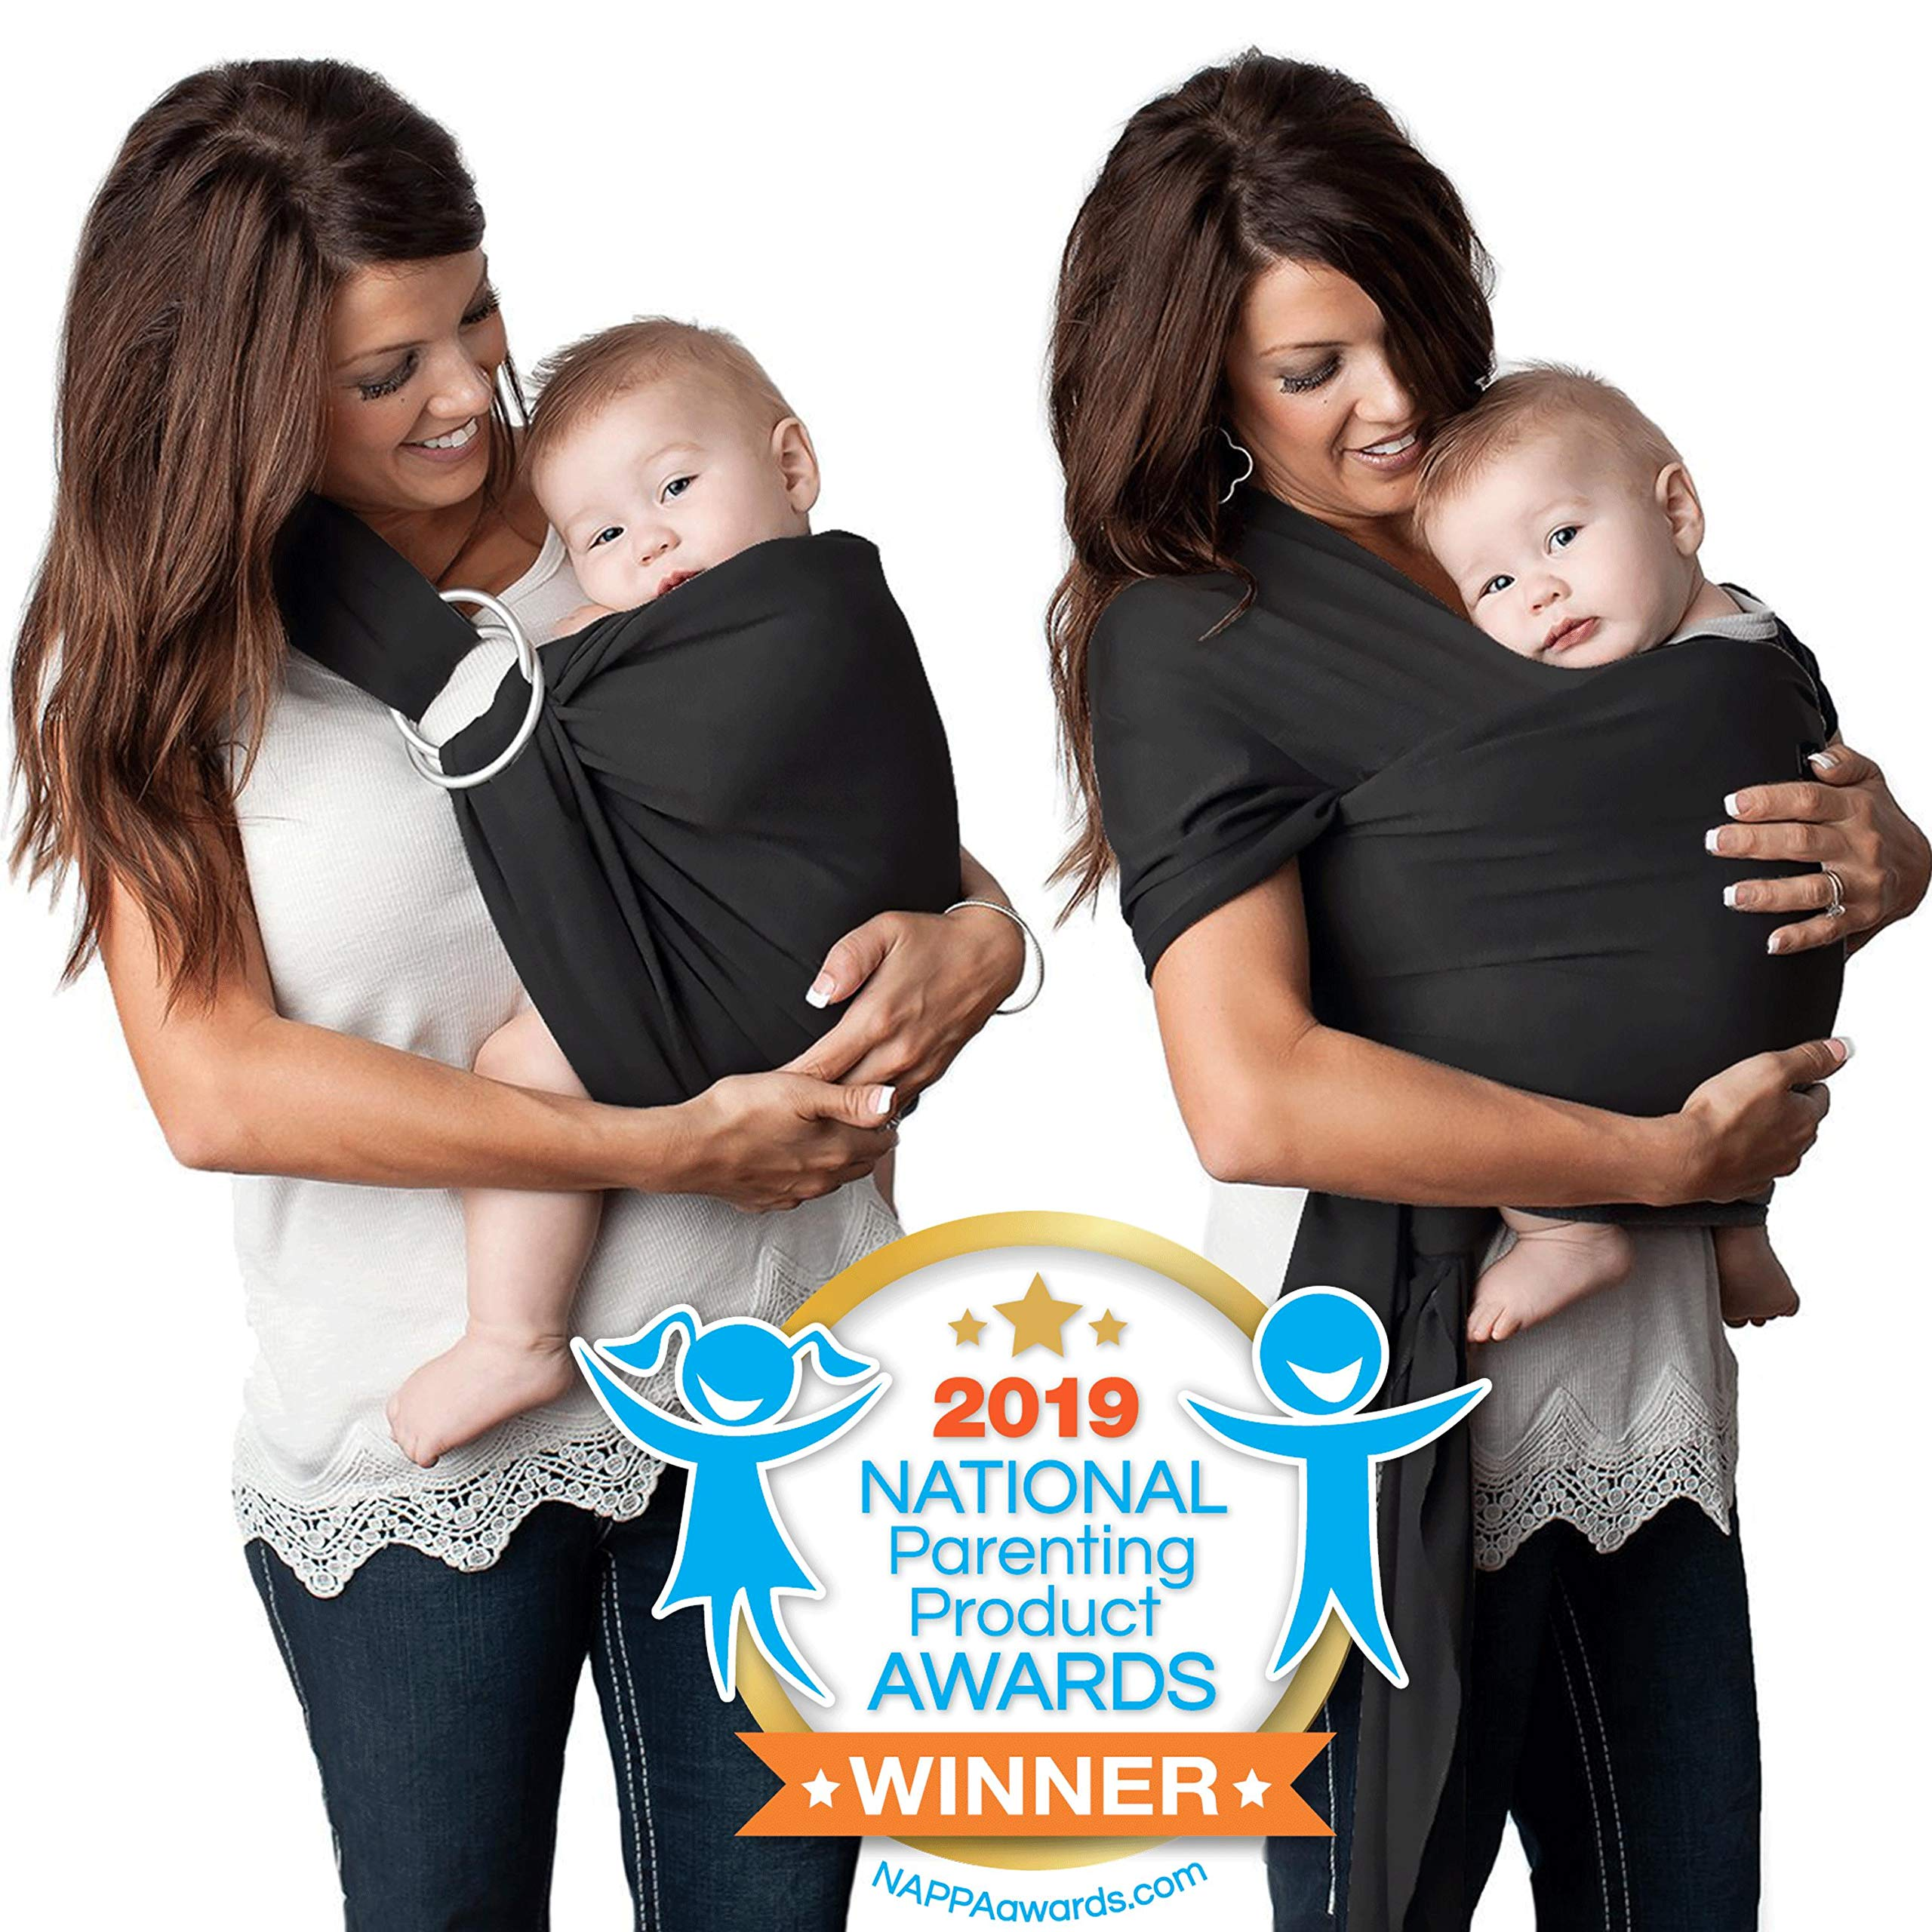 4 in 1 Baby Wrap Carrier and Ring Sling by Kids N' Such | Black Cotton | Use as a Postpartum Belt and Nursing Cover with Free Carrying Pouch | Best Baby Shower Gift for Boys or Girls